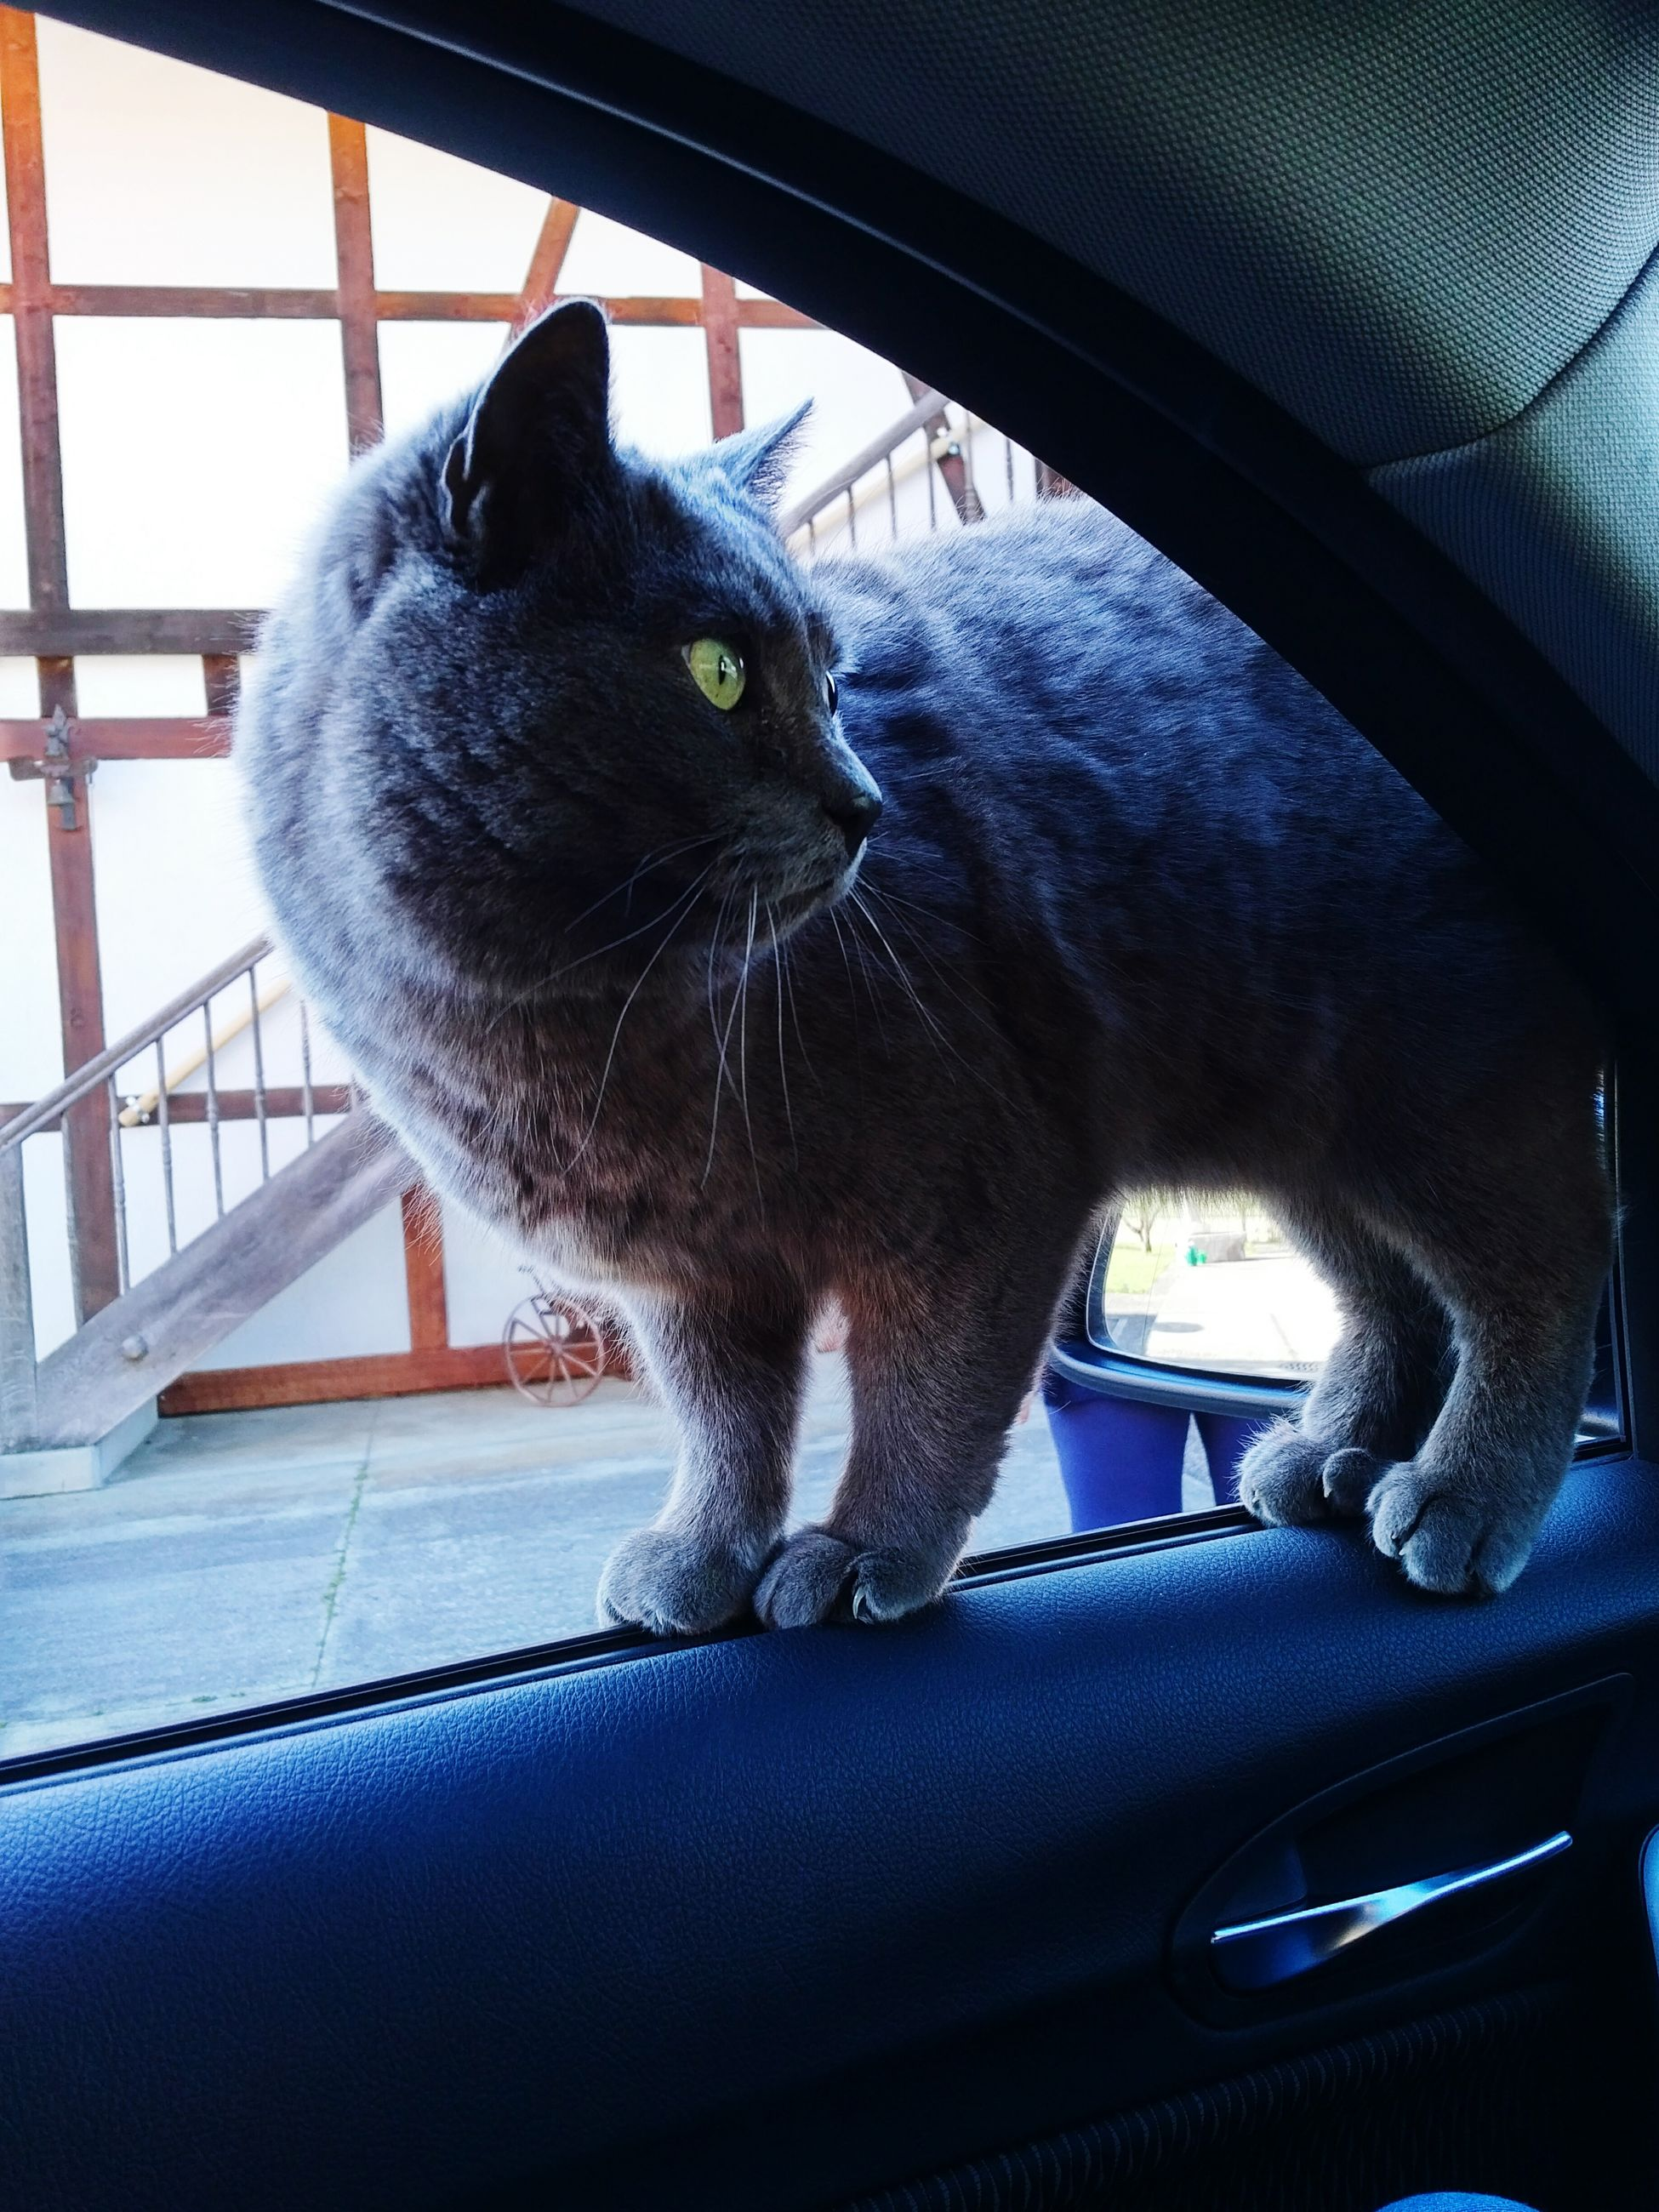 one animal, animal themes, pets, domestic animals, indoors, domestic cat, mammal, transportation, cat, portrait, close-up, mode of transport, car, black color, looking at camera, sitting, built structure, animal head, no people, window